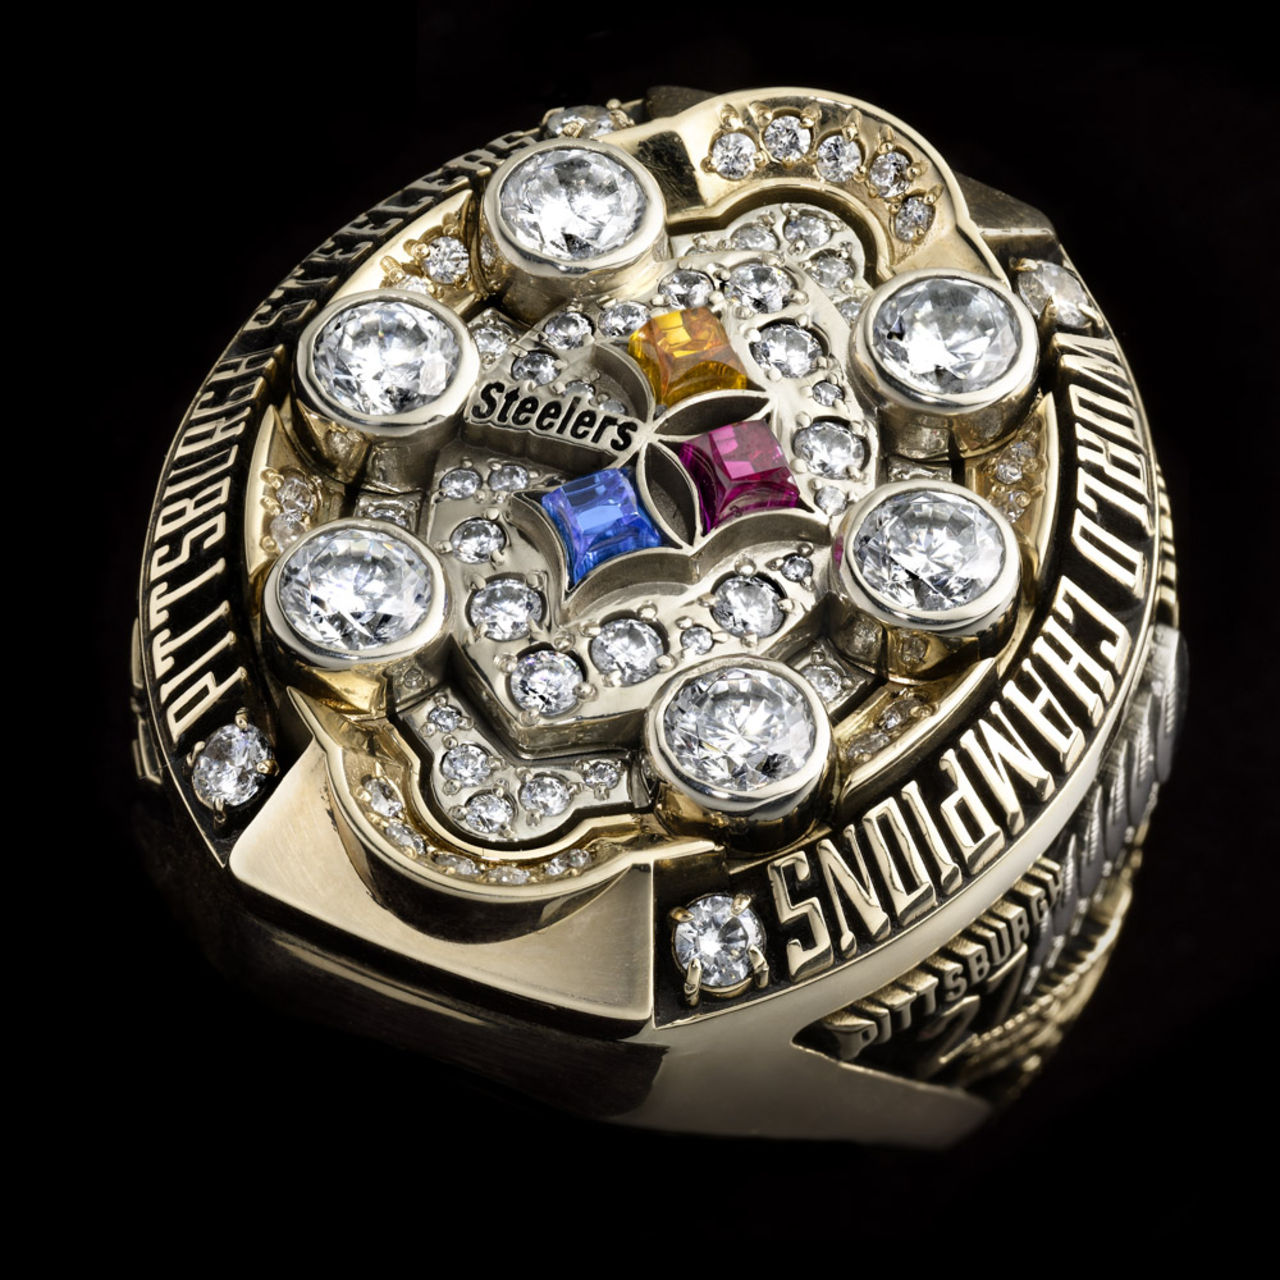 Pittsburgh Steelers 2009 champions ring